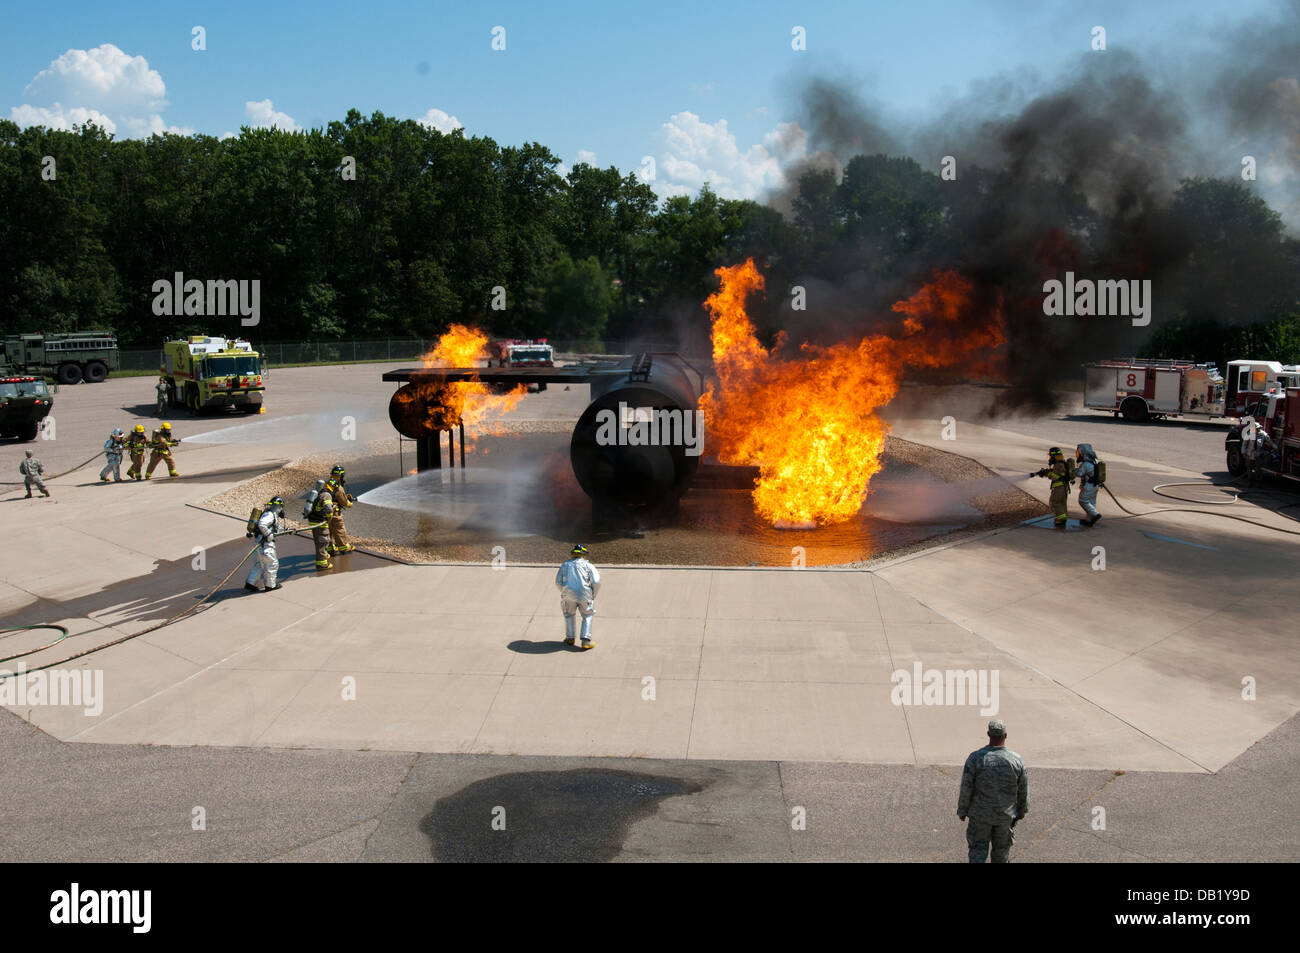 Teams of Air National Guard and U.S. Army Reserve firefighters work to put out a fire at Volk Field Combat Readiness - Stock Image